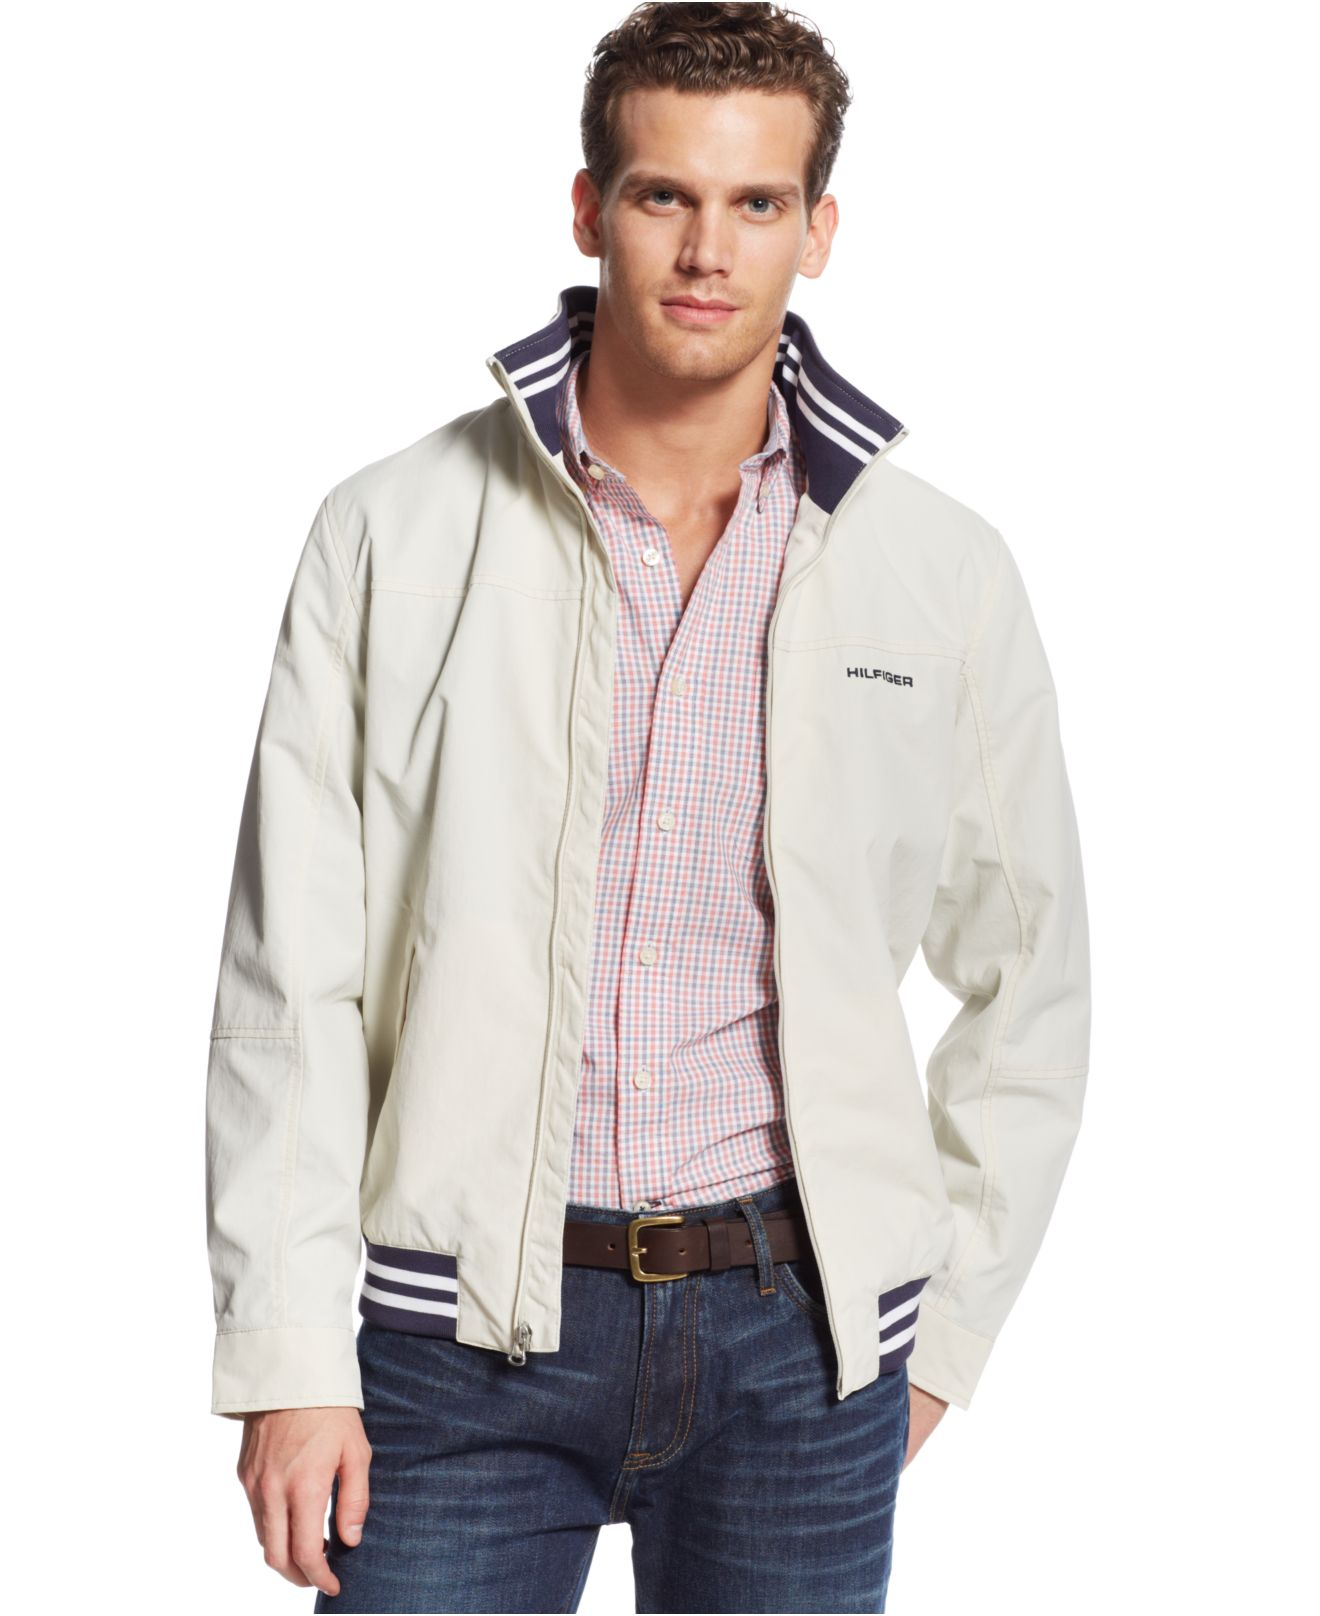 lyst tommy hilfiger regatta jacket in white for men. Black Bedroom Furniture Sets. Home Design Ideas